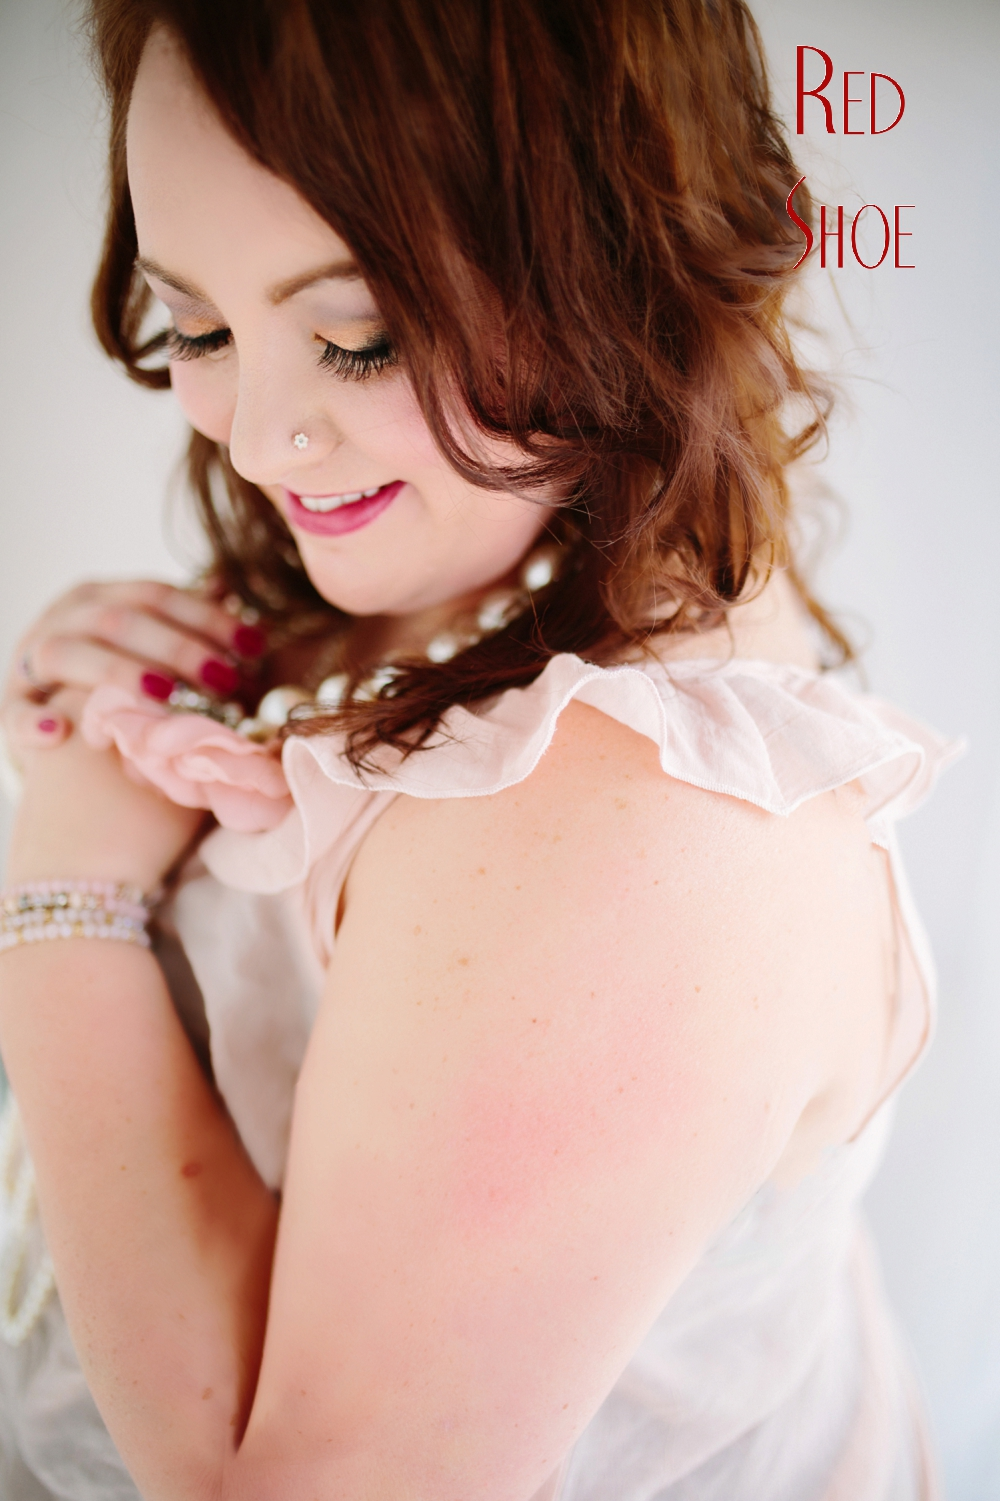 Female makeover photography, Red Shoe Makeovers, Chester makeover studio_0005.jpg